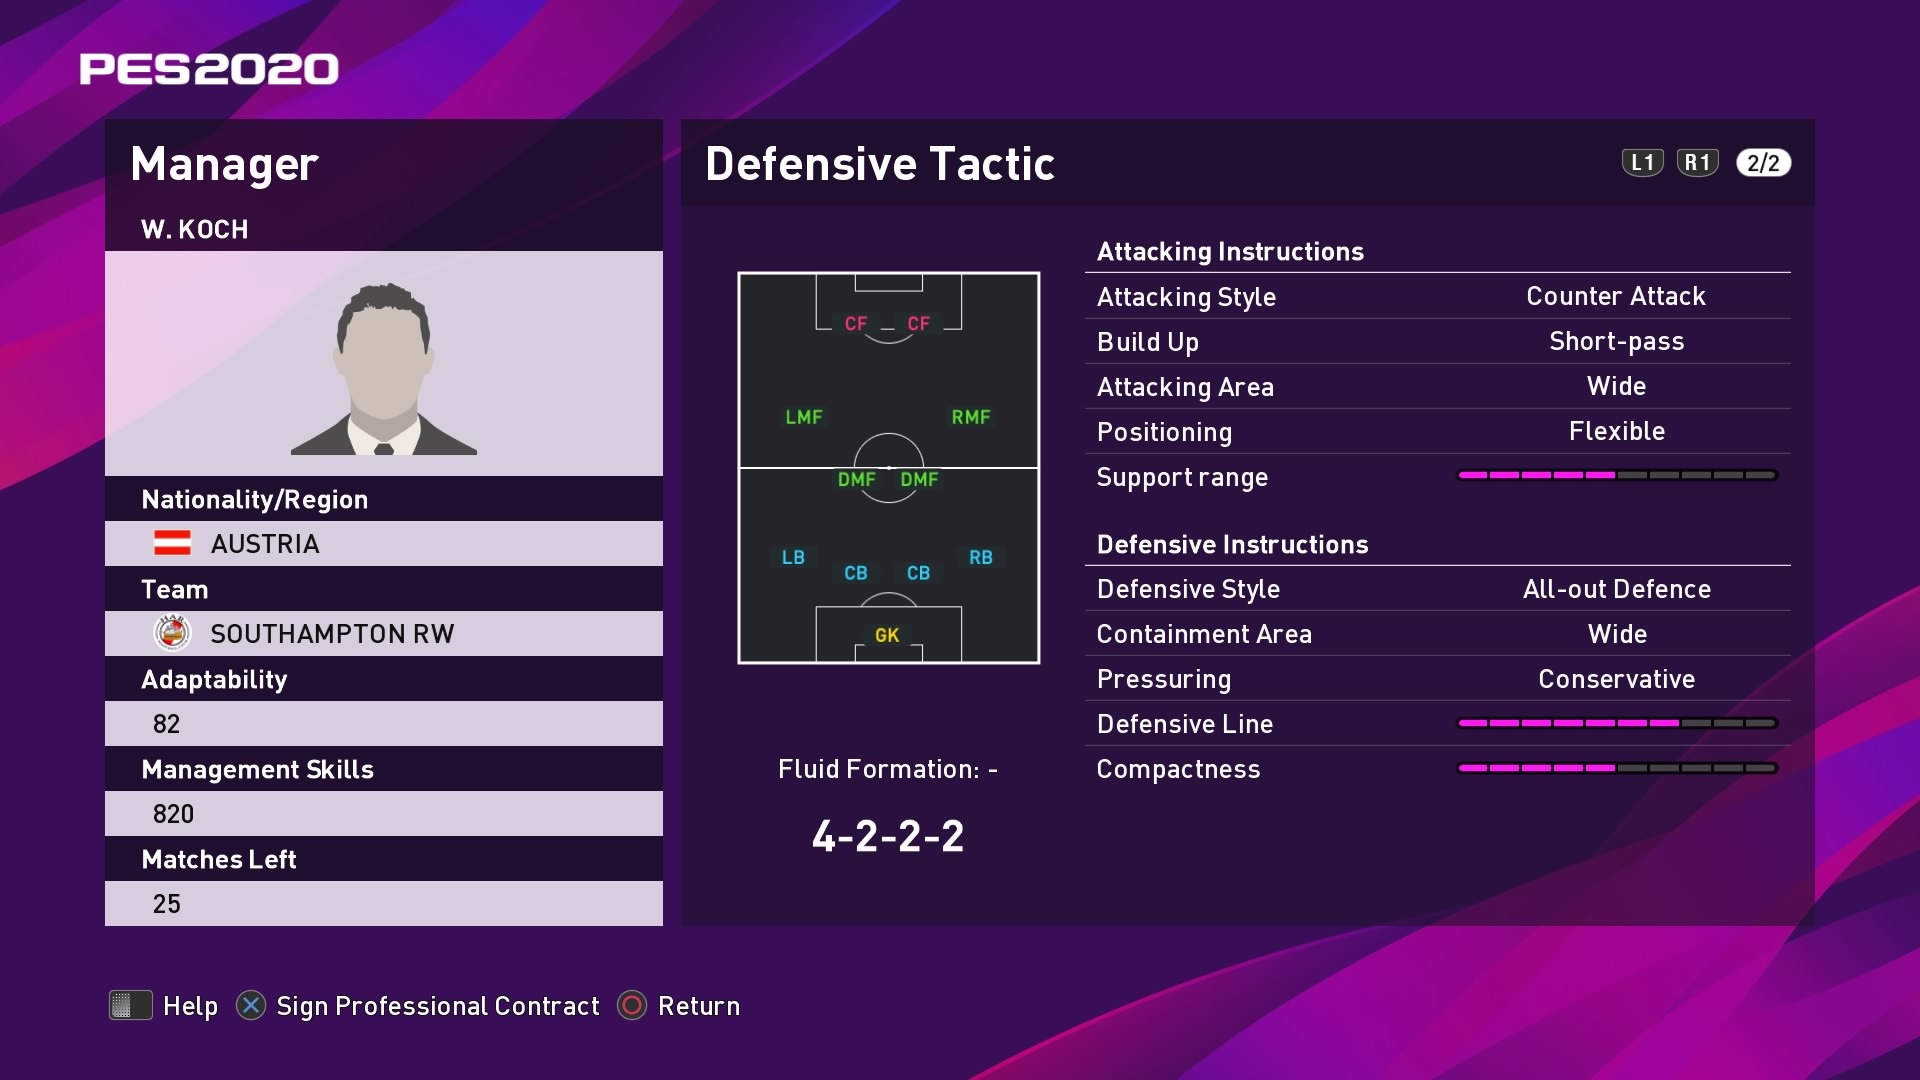 W. Koch (3) (Ralph Hasenhüttl) Defensive Tactic in PES 2020 myClub